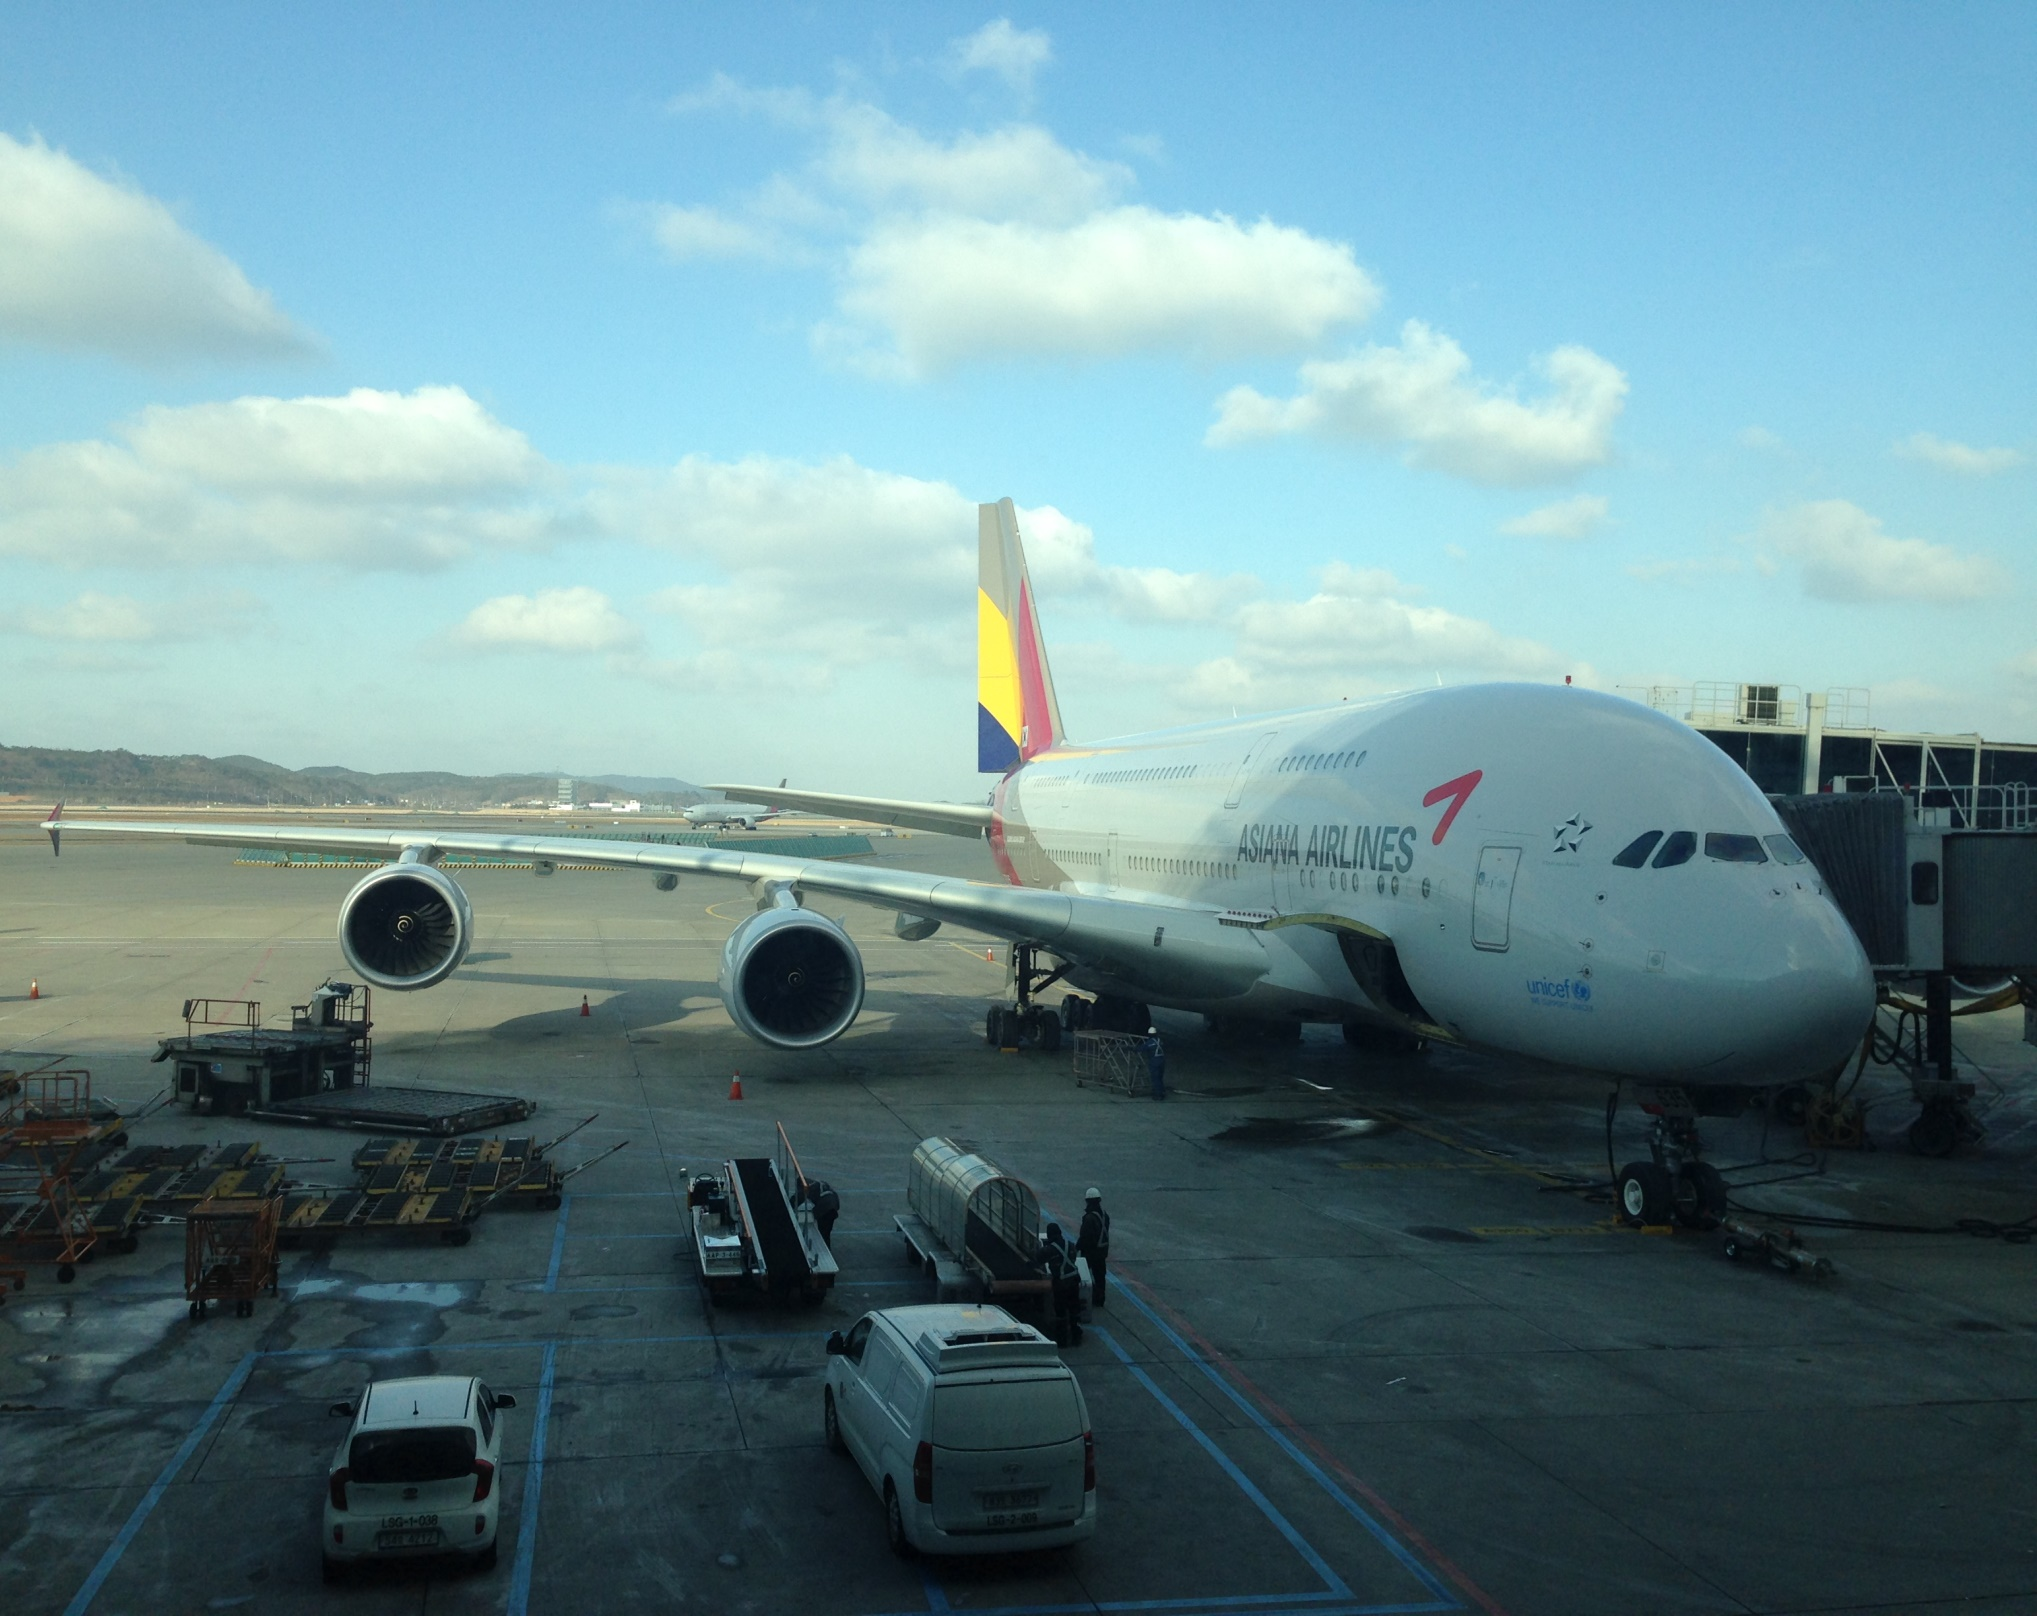 Asiana_Airbus A380_Seoul_ICN_Airport_Jan 2016